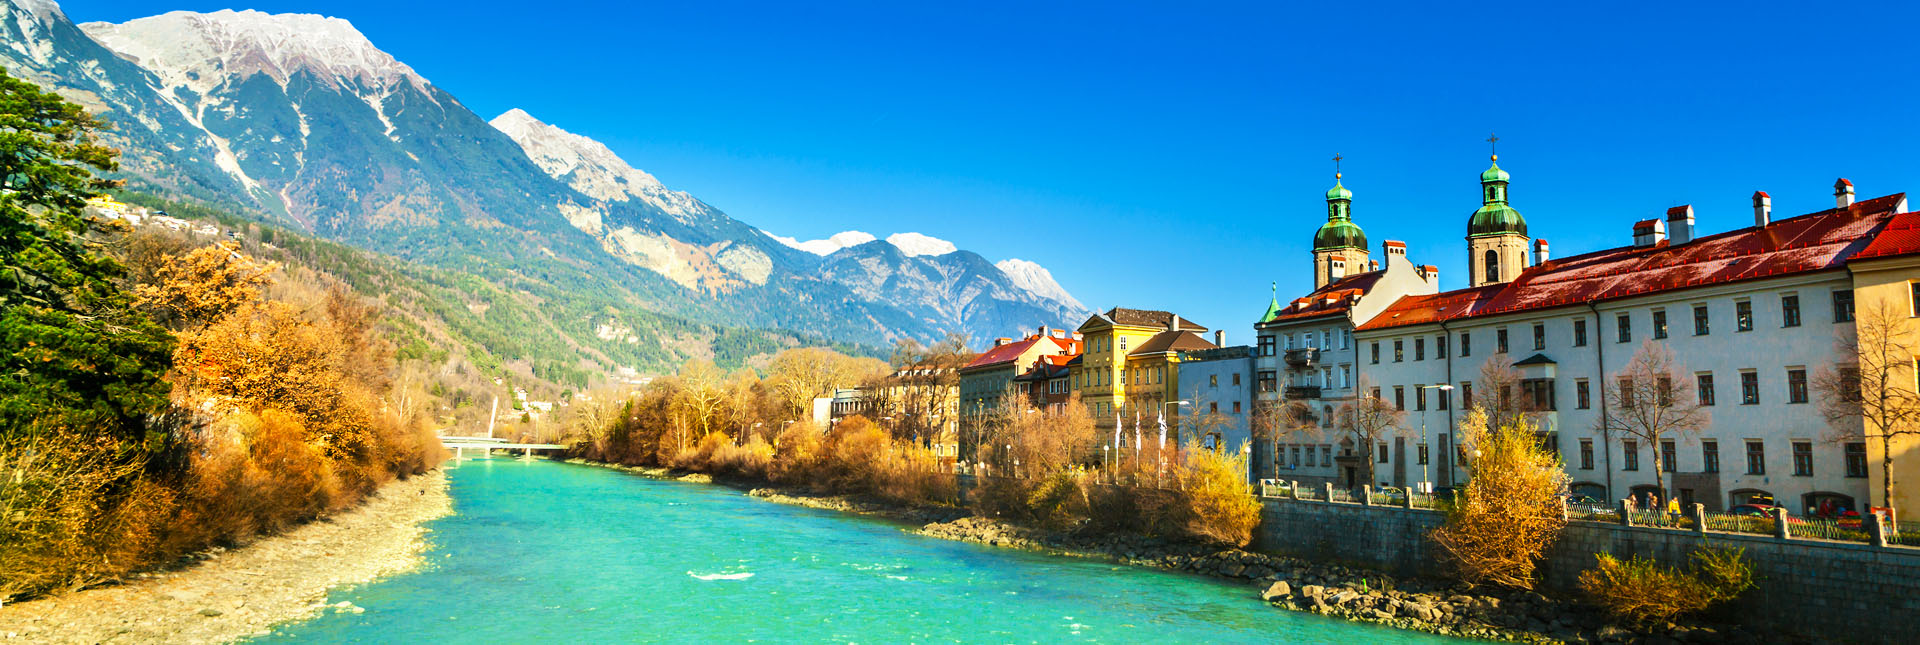 Innsbruck has a history dating back to the 12th century